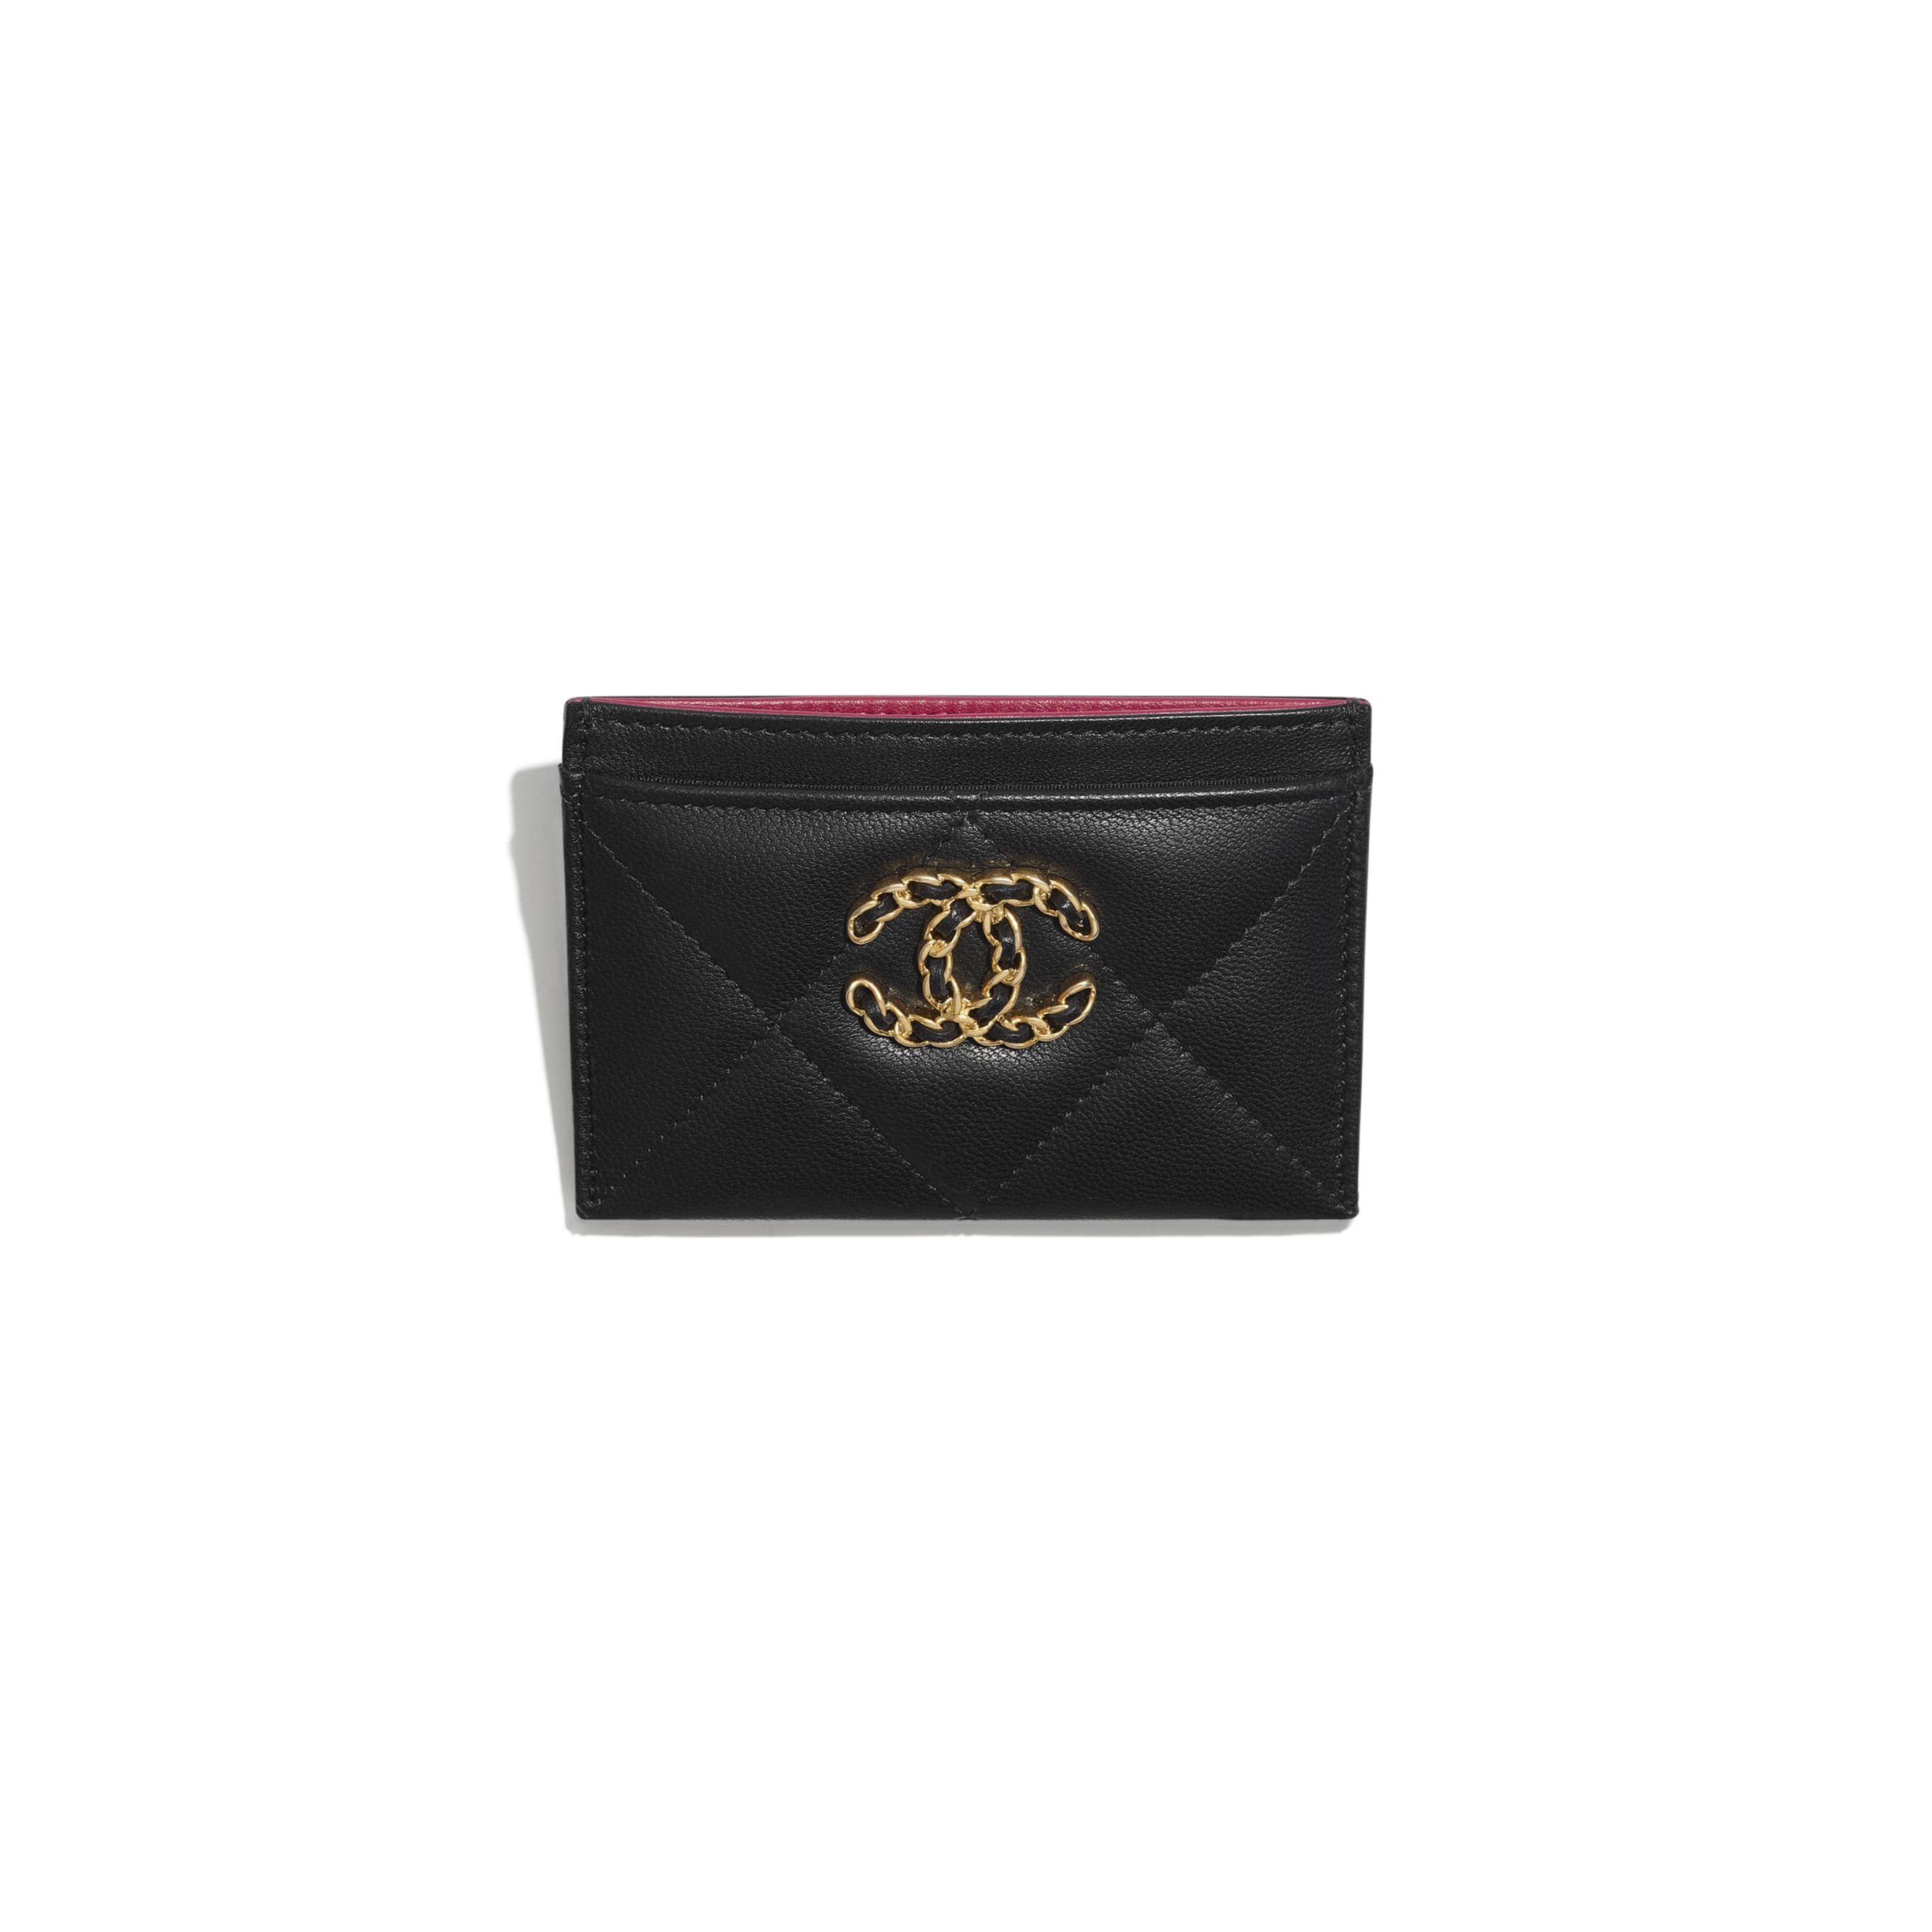 CHANEL 19 Card Holder - Black - Shiny Goatskin, Gold-Tone, Silver-Tone & Ruthenium-Finish Metal - CHANEL - Other view - see standard sized version